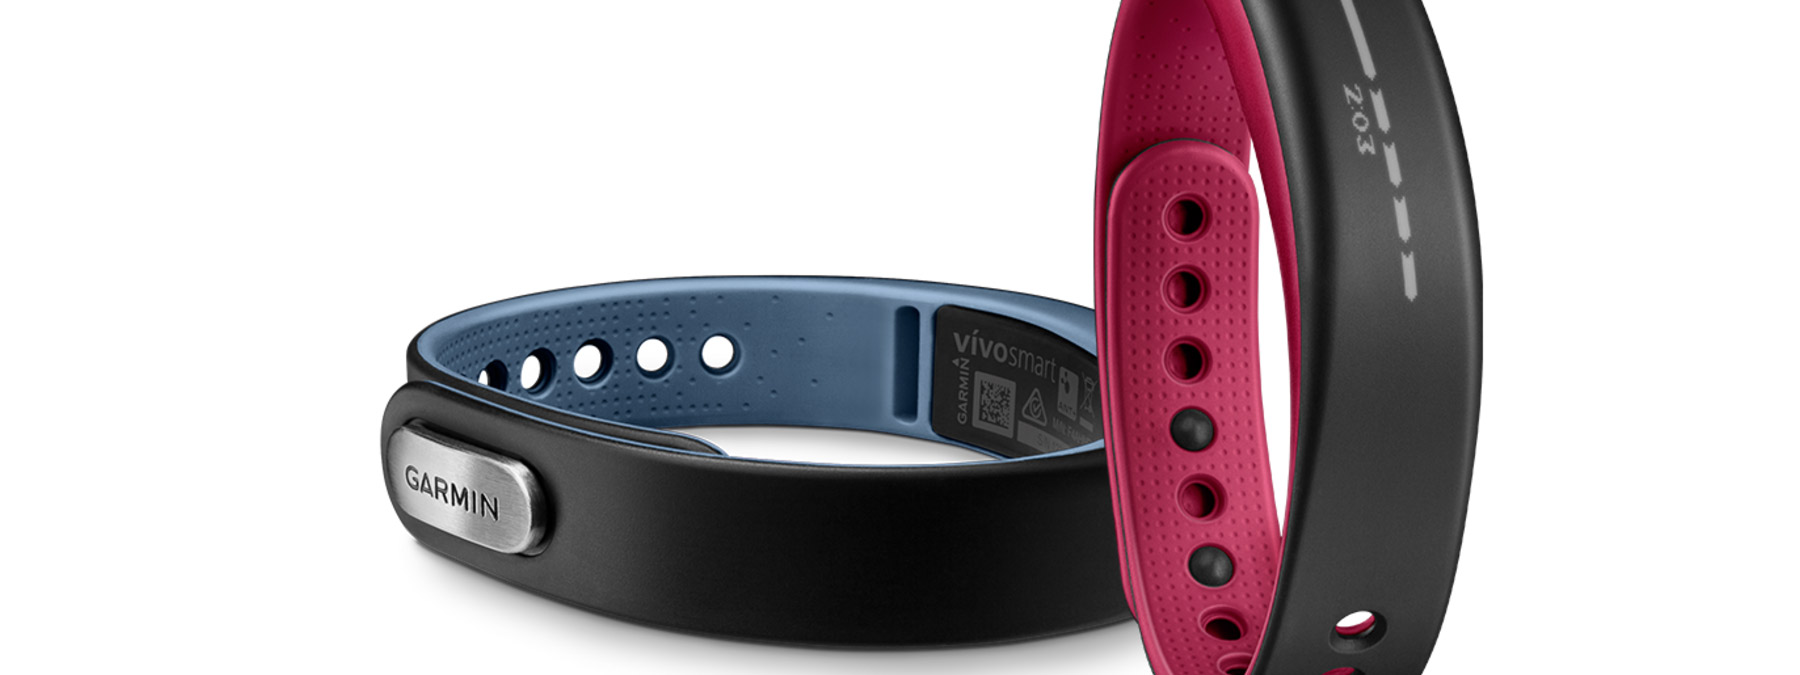 garmin_vivosmart_home